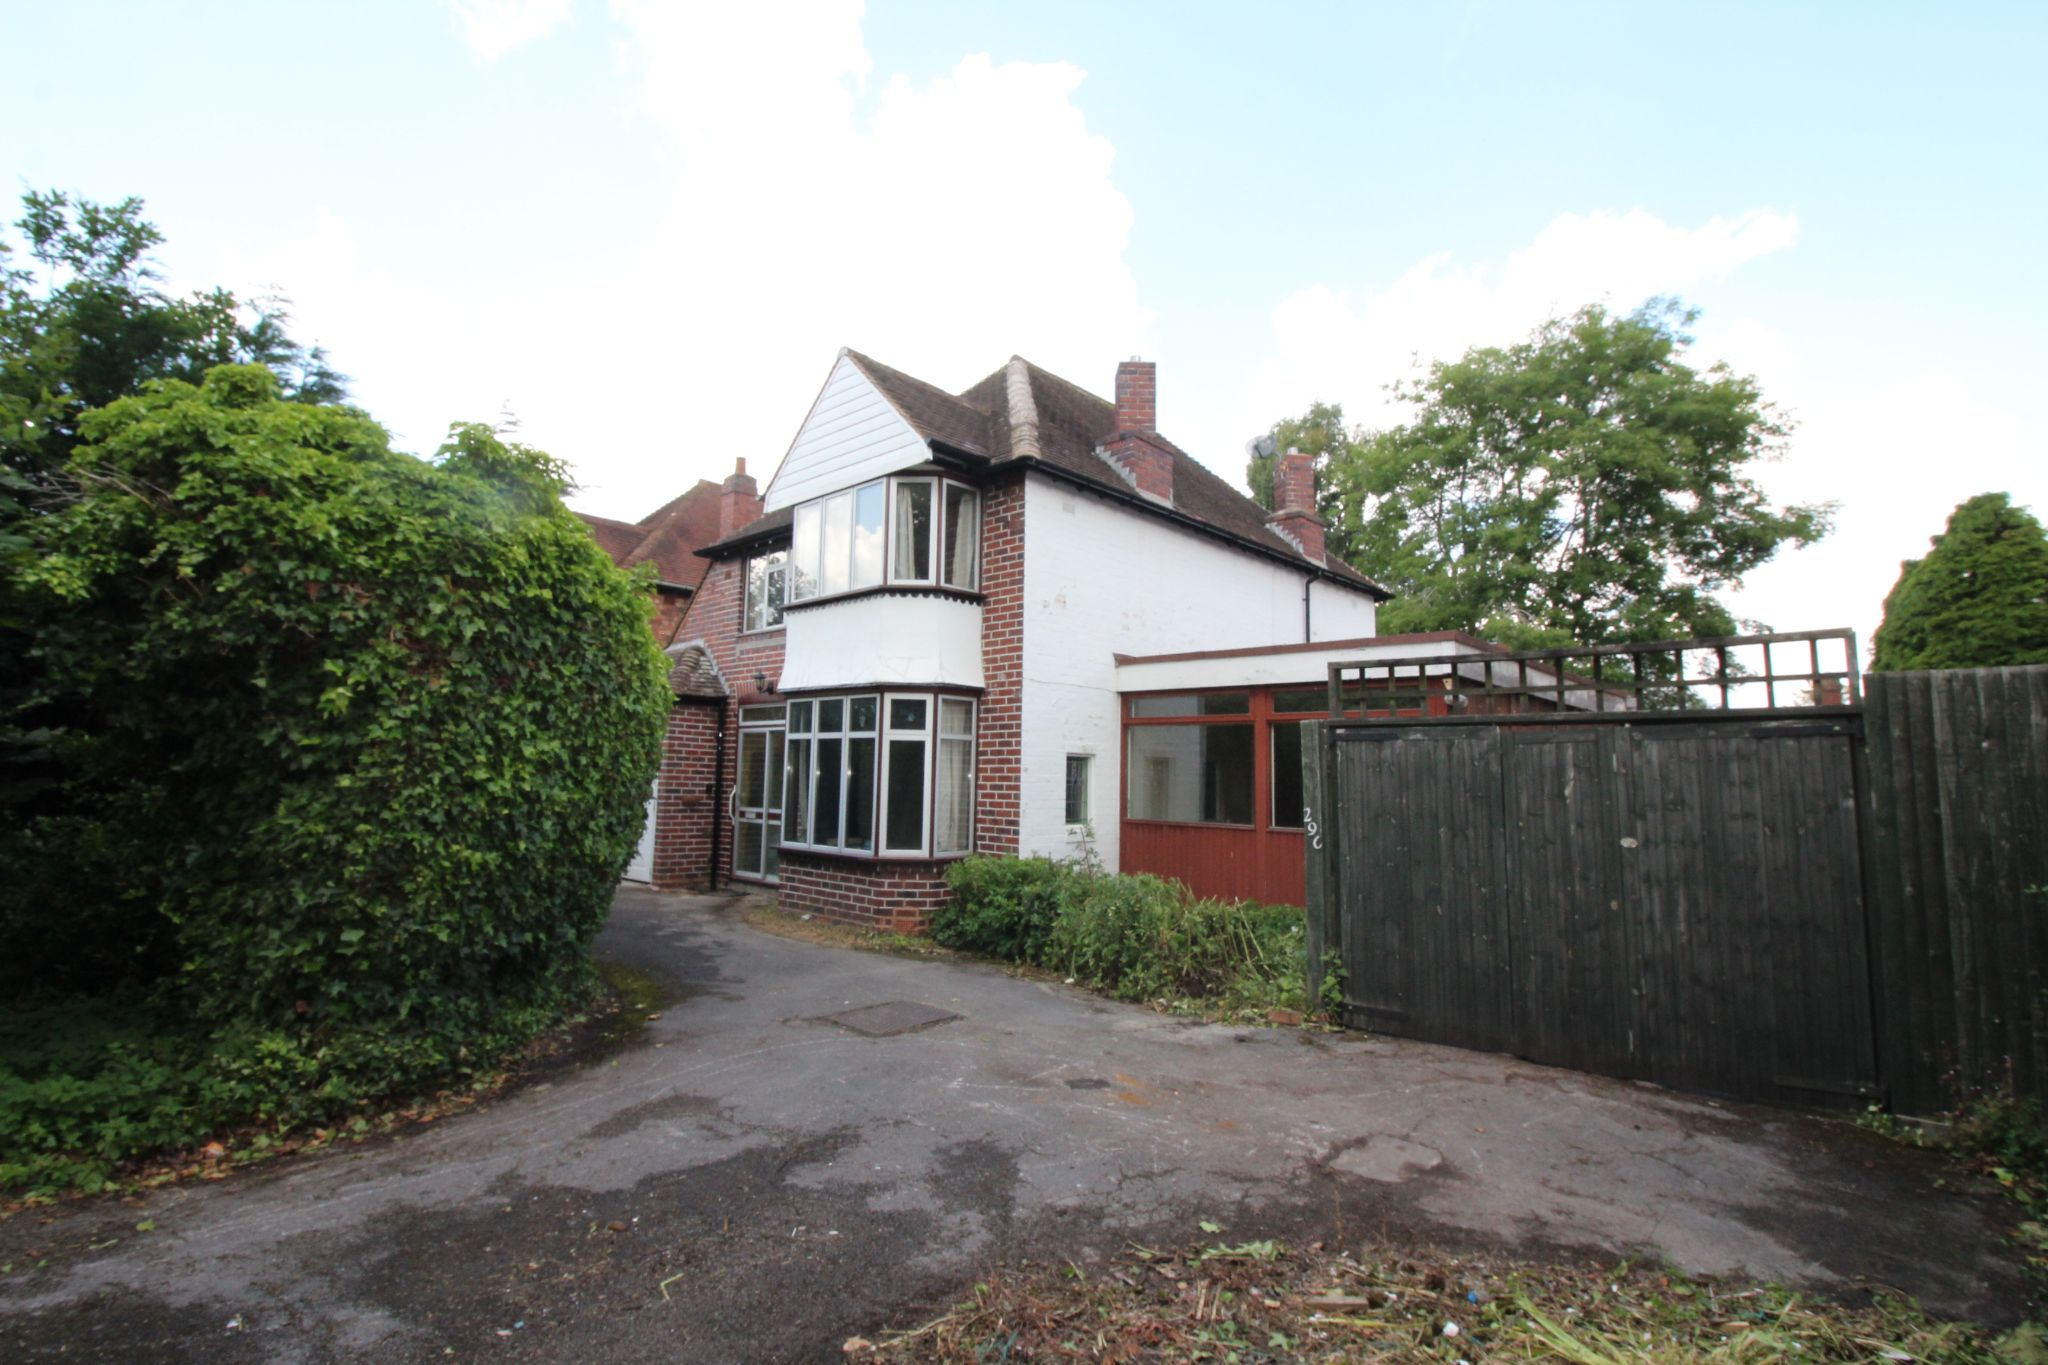 4 bedroom detached house SSTC in Solihull - Photograph 1.